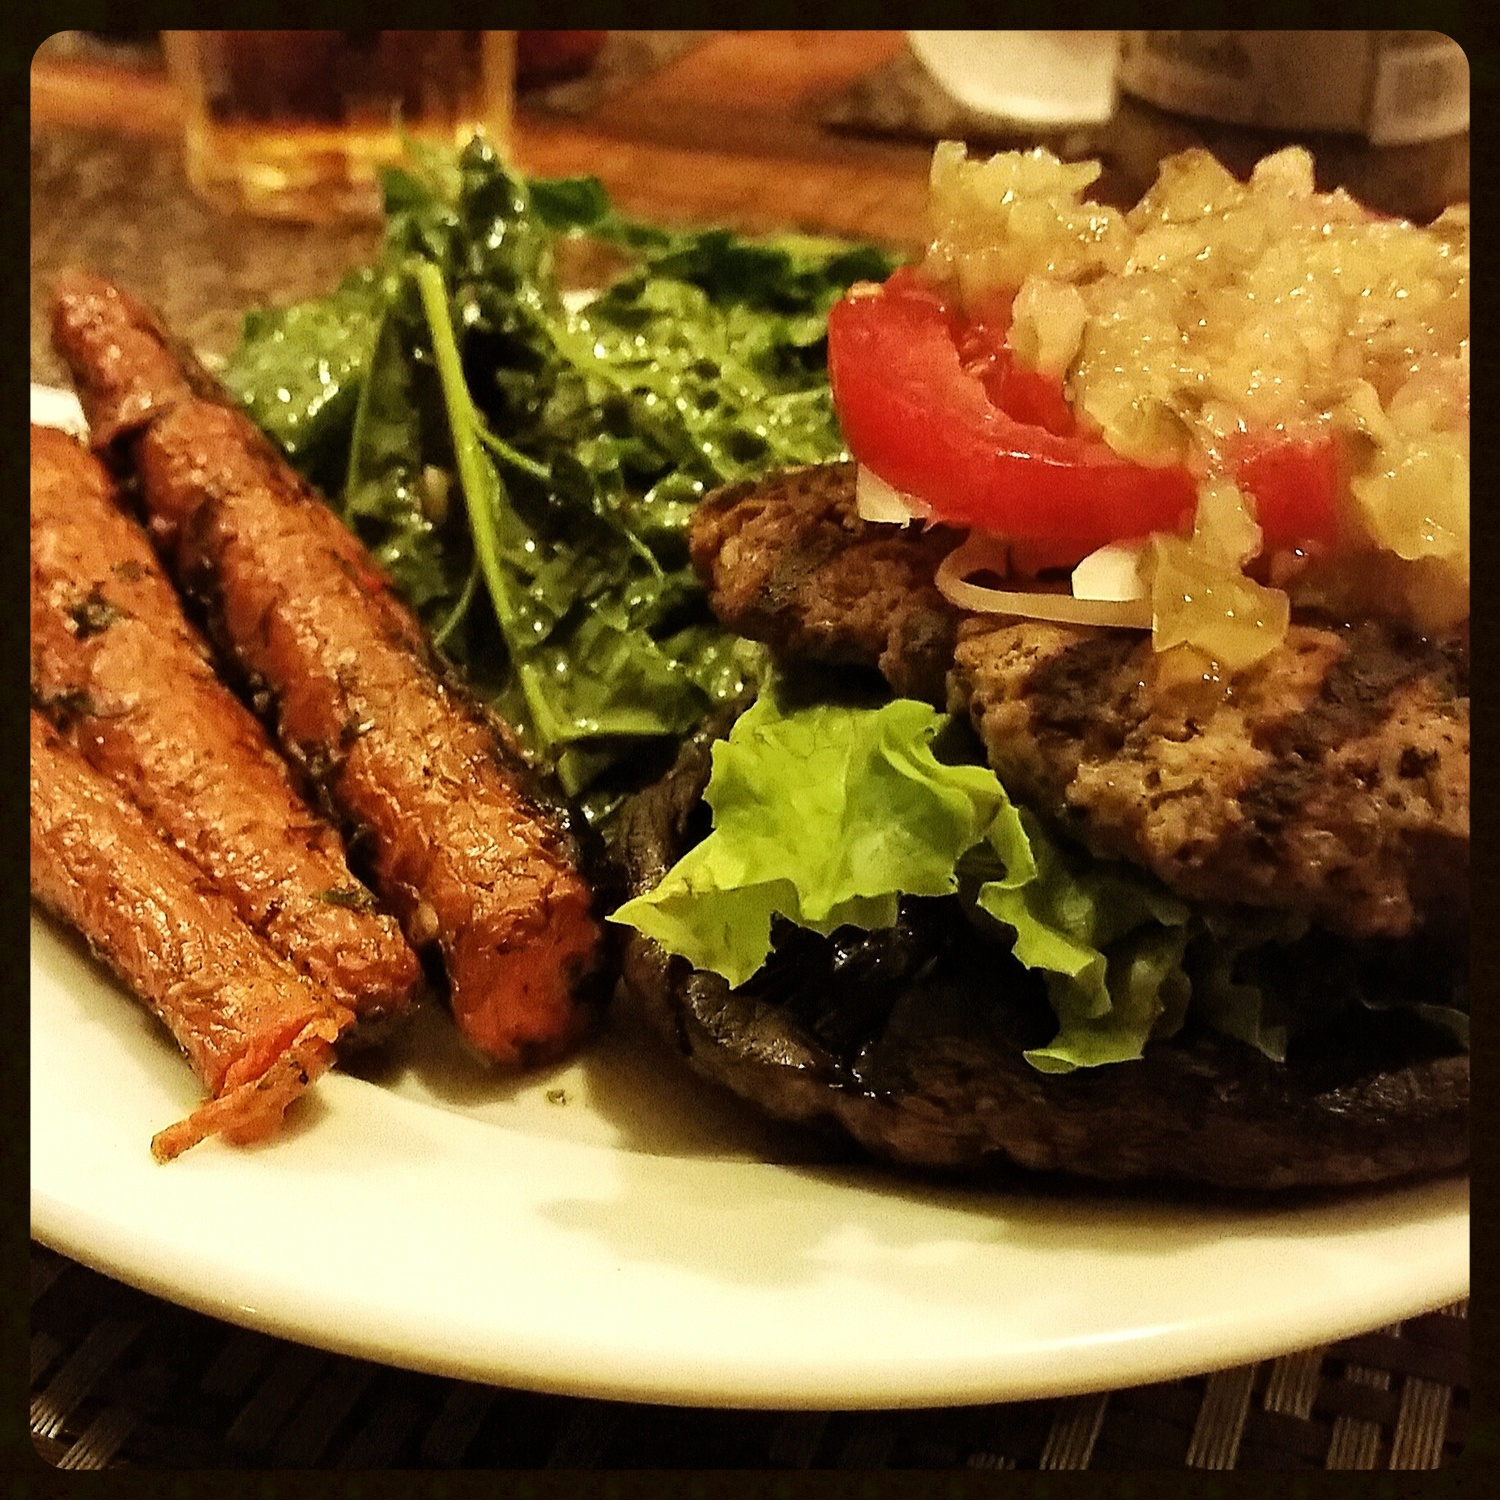 Inspired by NomNompaleo's Big-O Bacon burger from the recipe book, Nom Nom Paleo: Food For Humans. Link below.